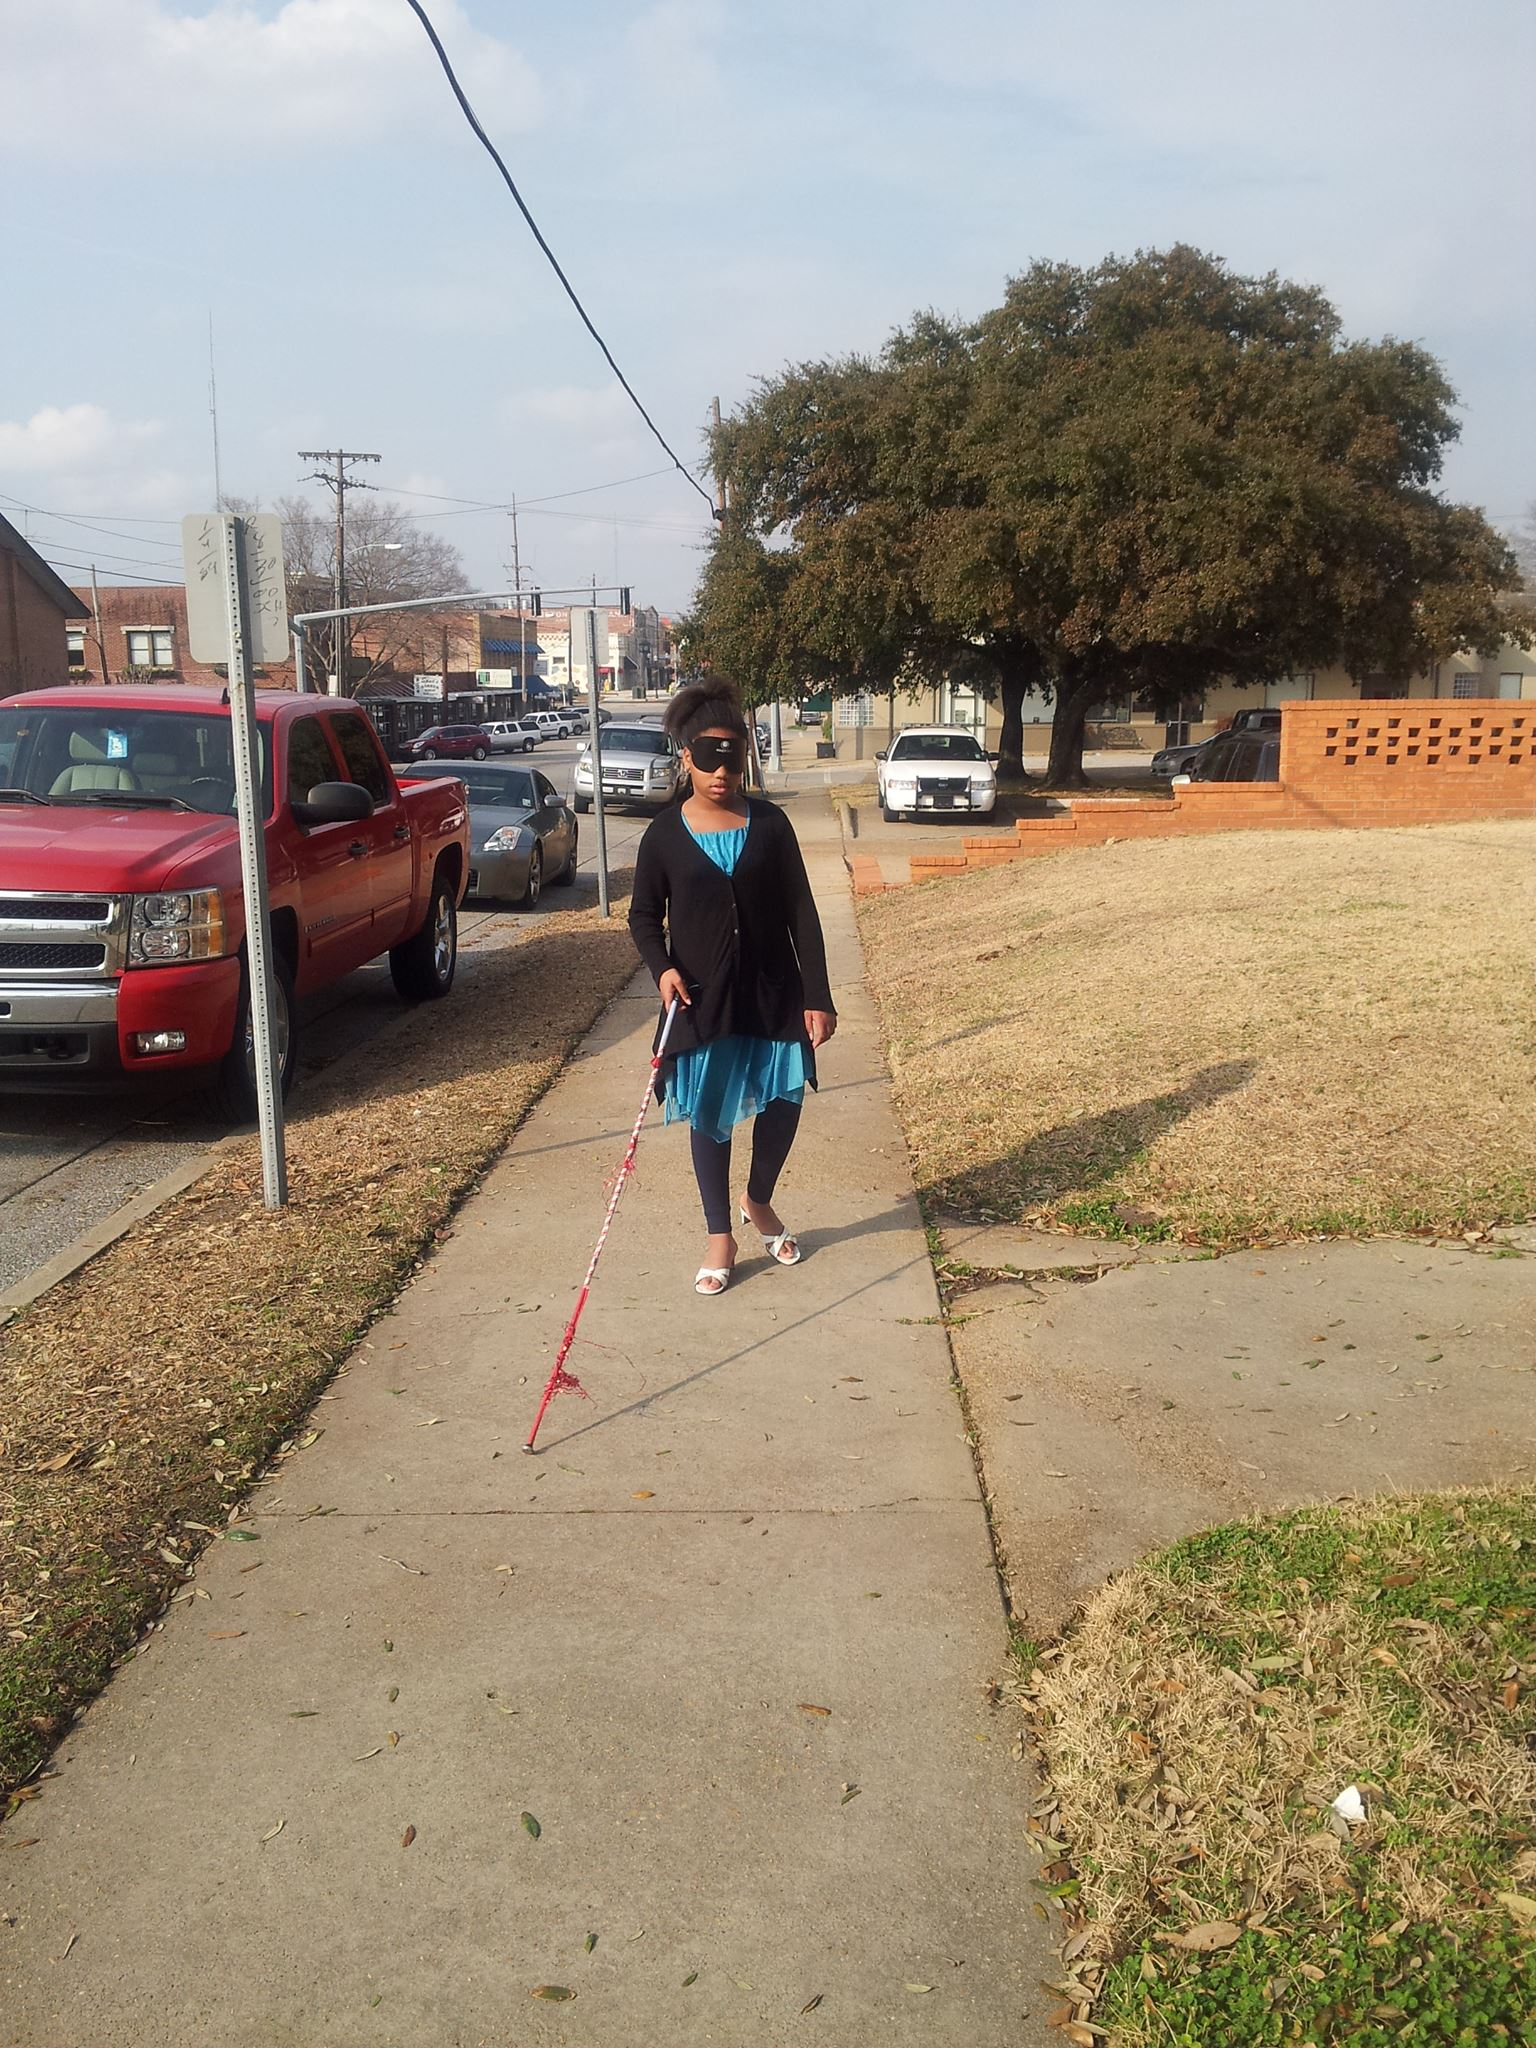 Malayja on cane travel